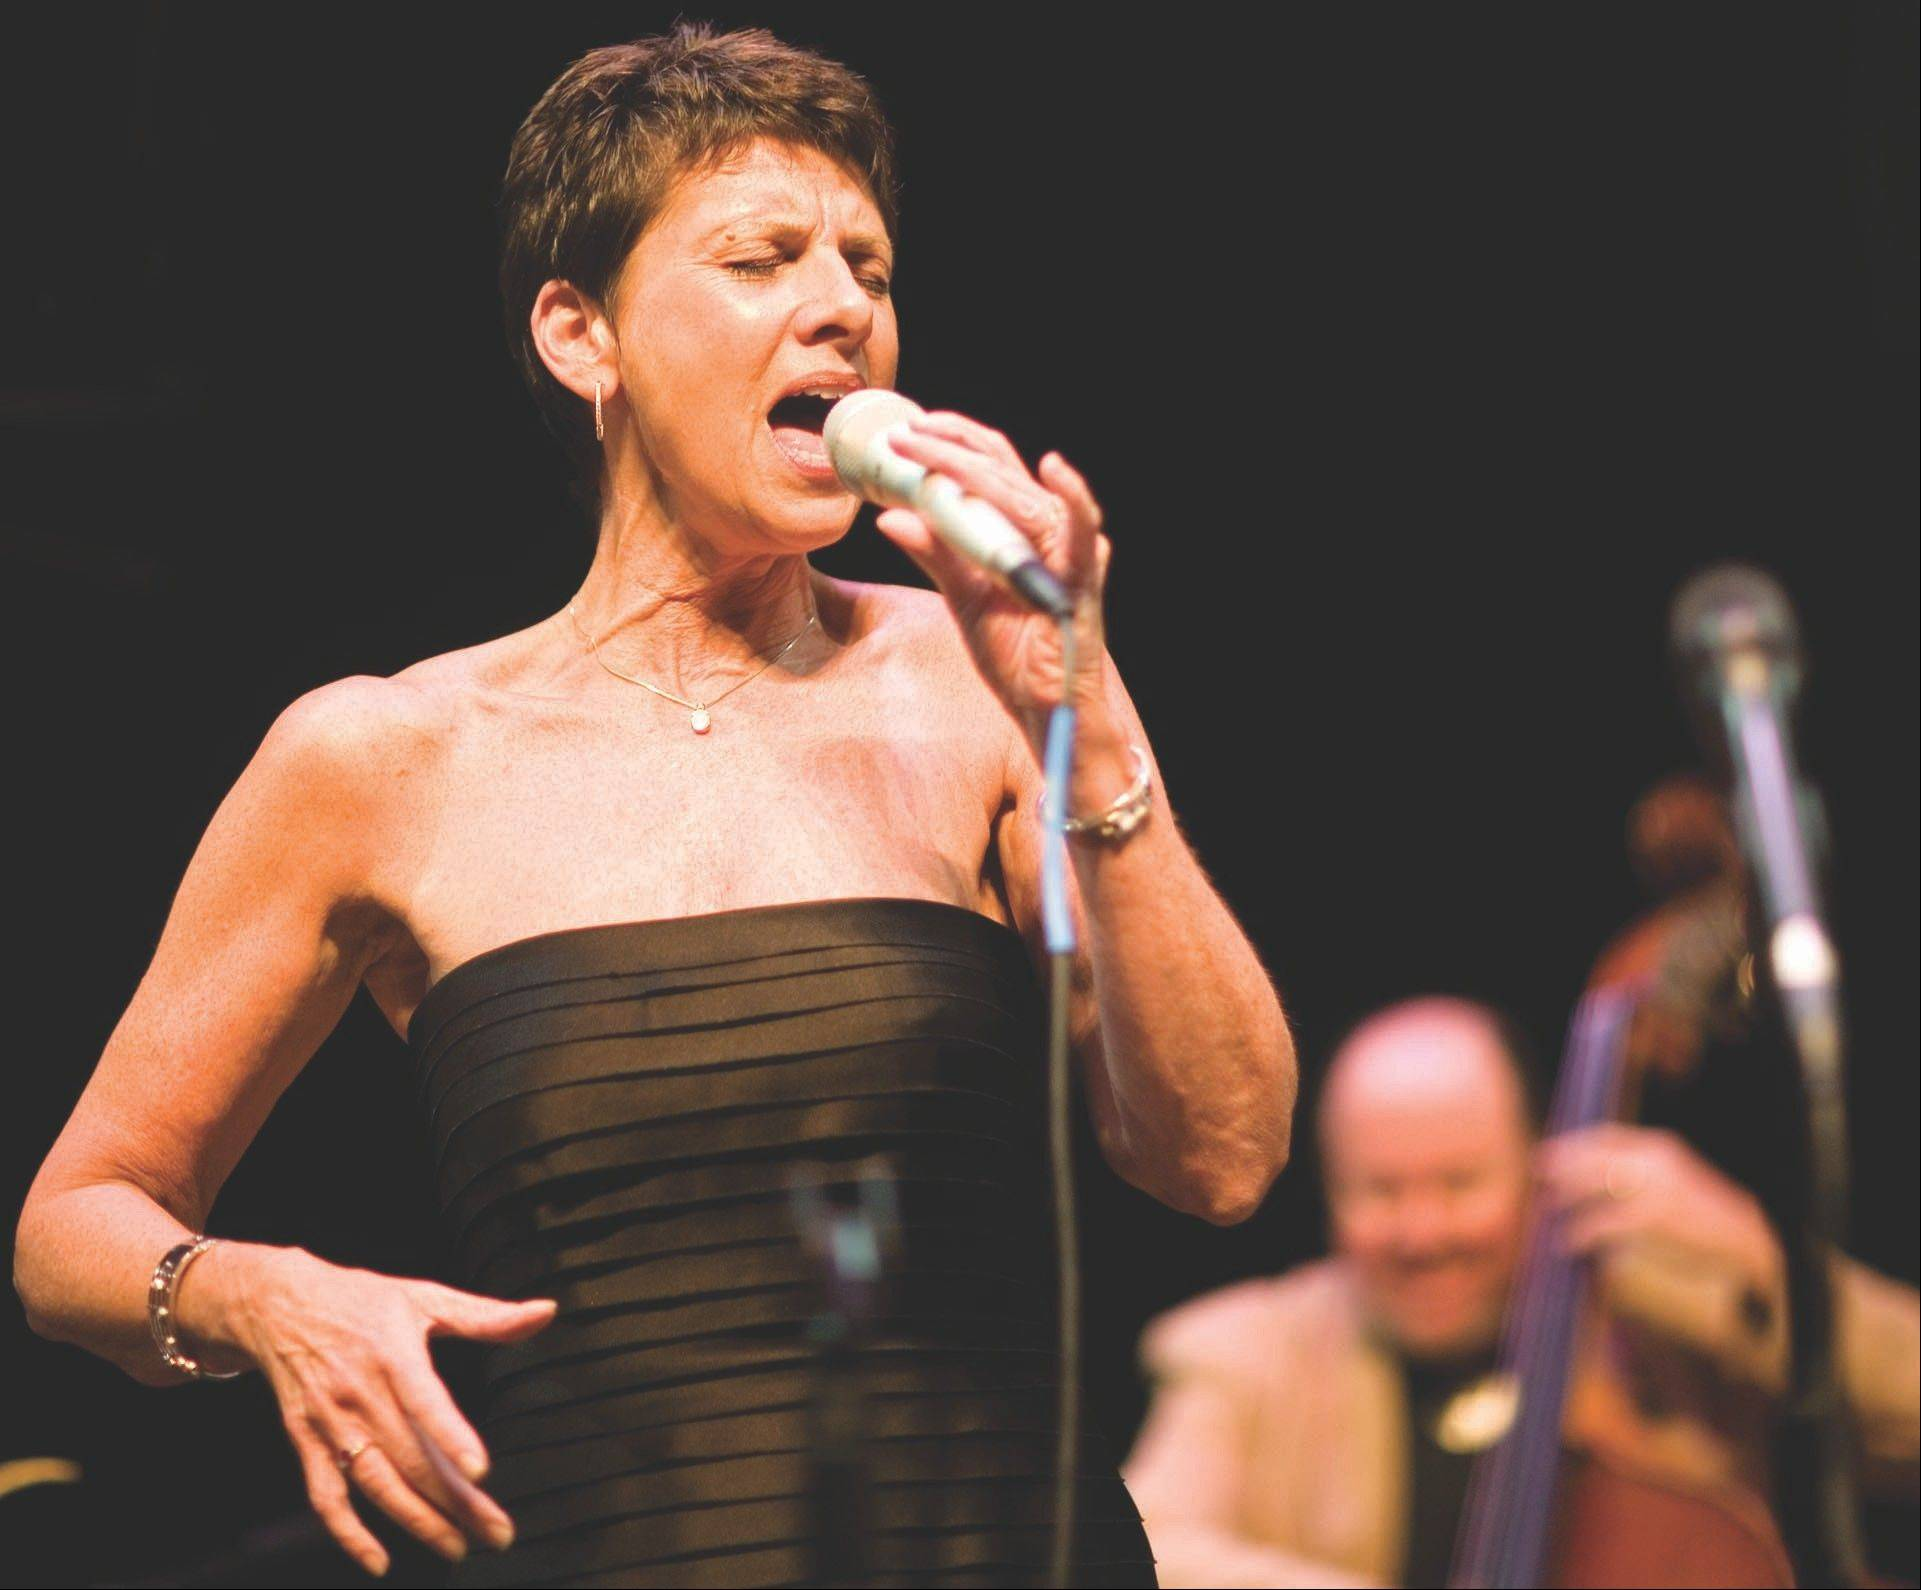 Vocalist Janice Borla headlines the Madden Theatre at North Central College in Naperville on Friday, May 17.